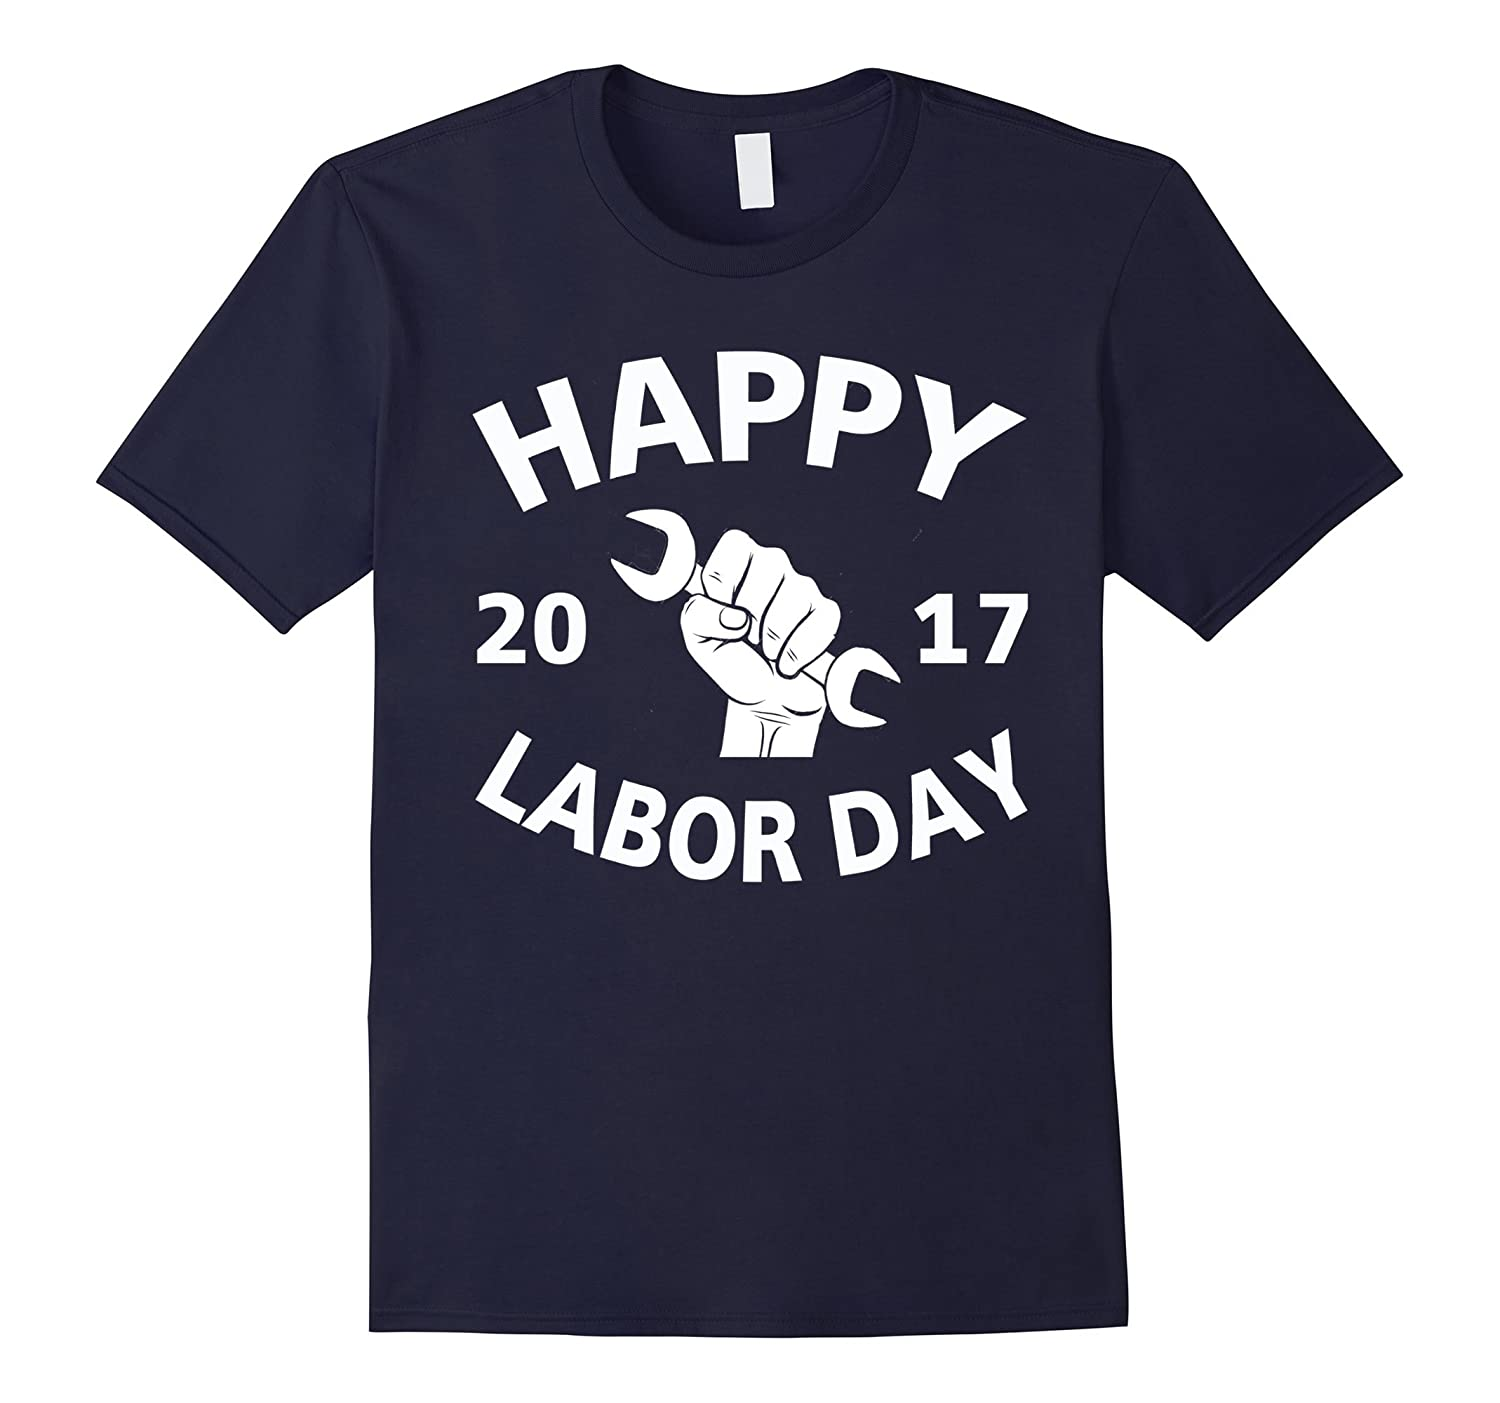 Happy Labor Day T-Shirt, Celebrating Labor Day 2017 Shirt-BN